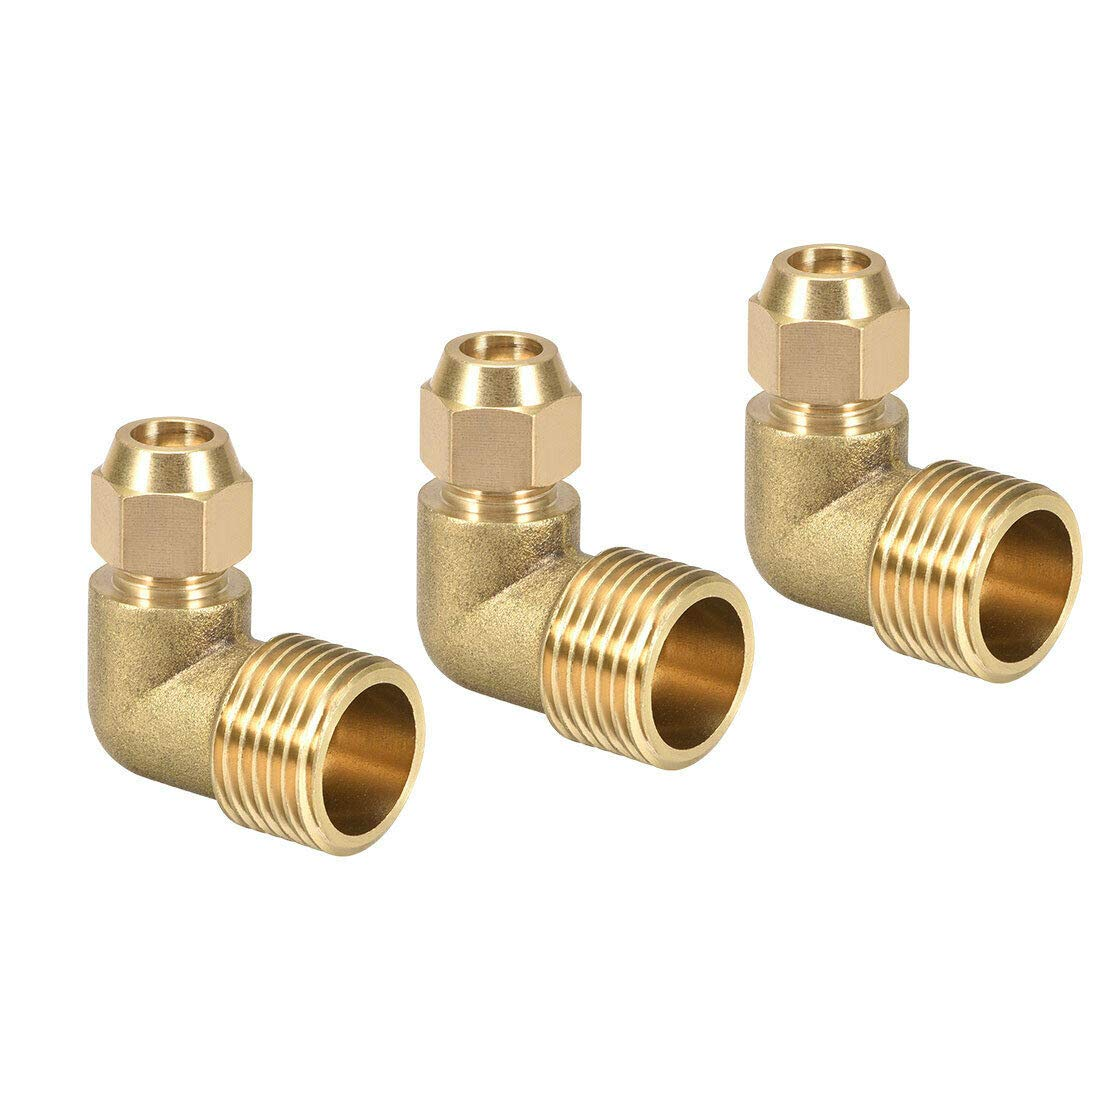 Pipe Fittings Brass Compression Tube Elbow Ranking TOP10 G1 Ranking TOP17 Fitting 90 Degree